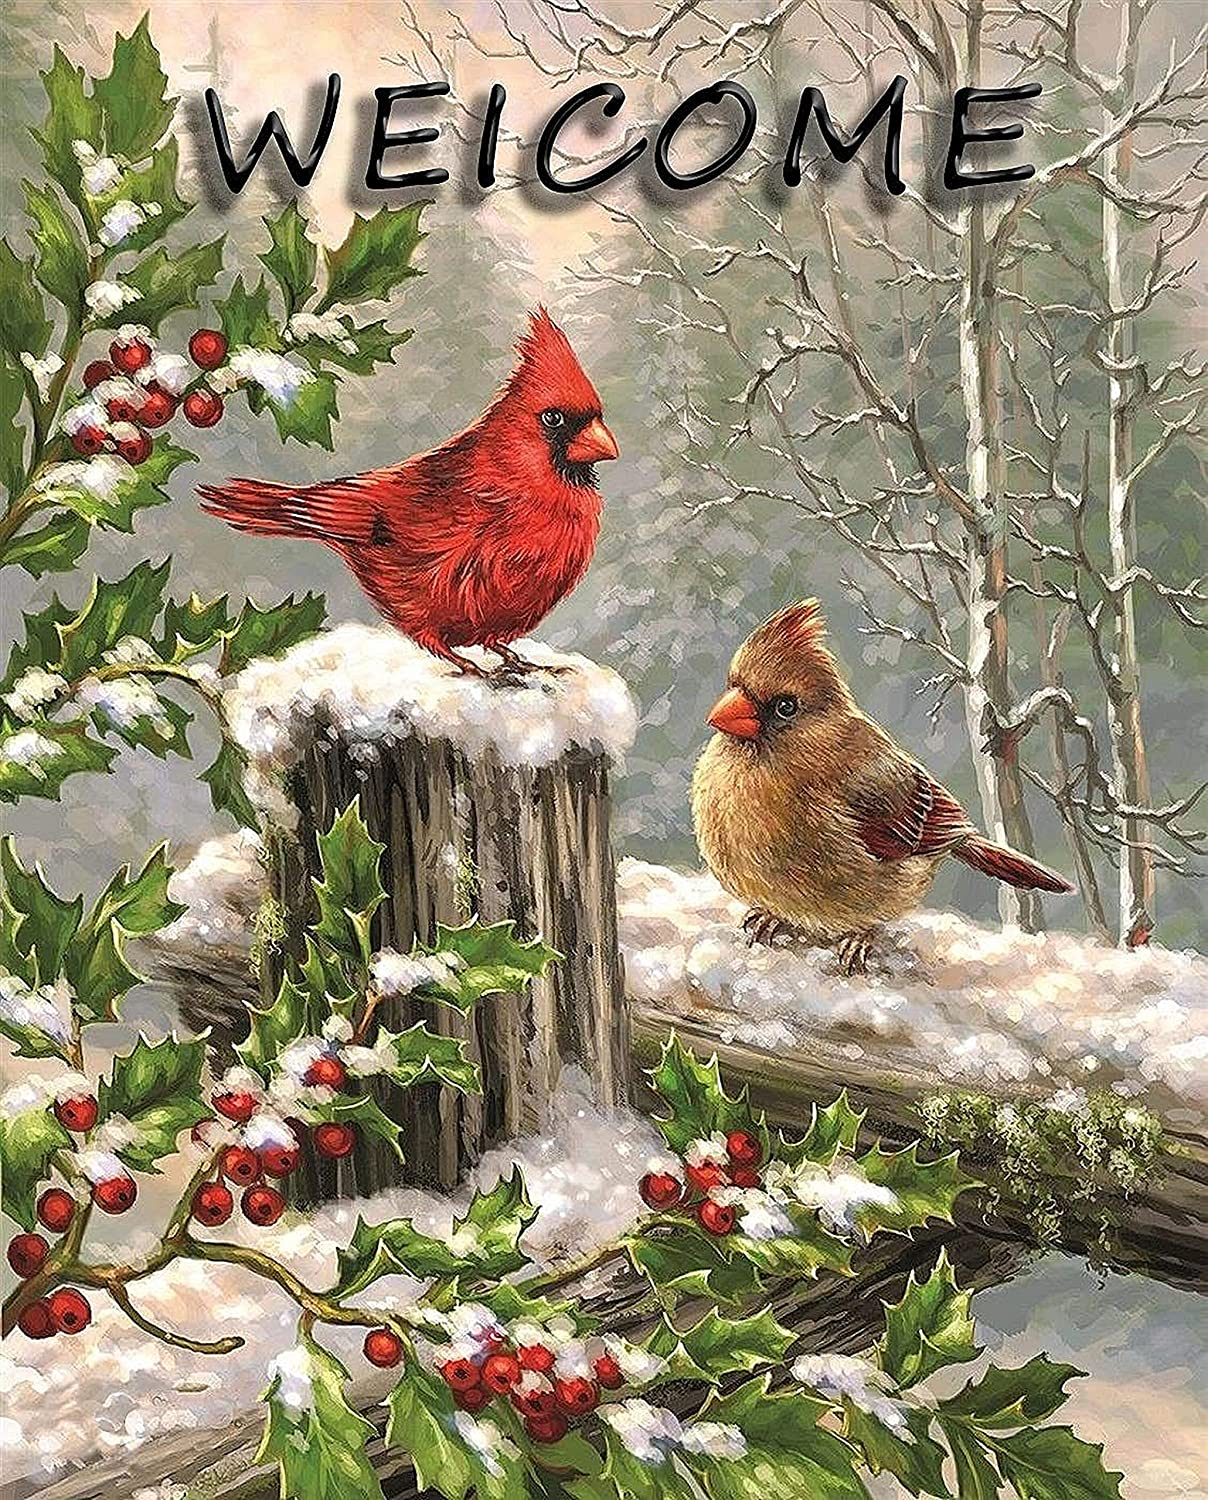 Cardinal Garden Flag, Winter Spring Home Decorative House Cardinal Yard Flag Red Bird Maple Leaf Decor Double Sided, Winter Outdoor Welcome Decorations Seasonal Outside Winter Garden Flag 12 x 18 Inch